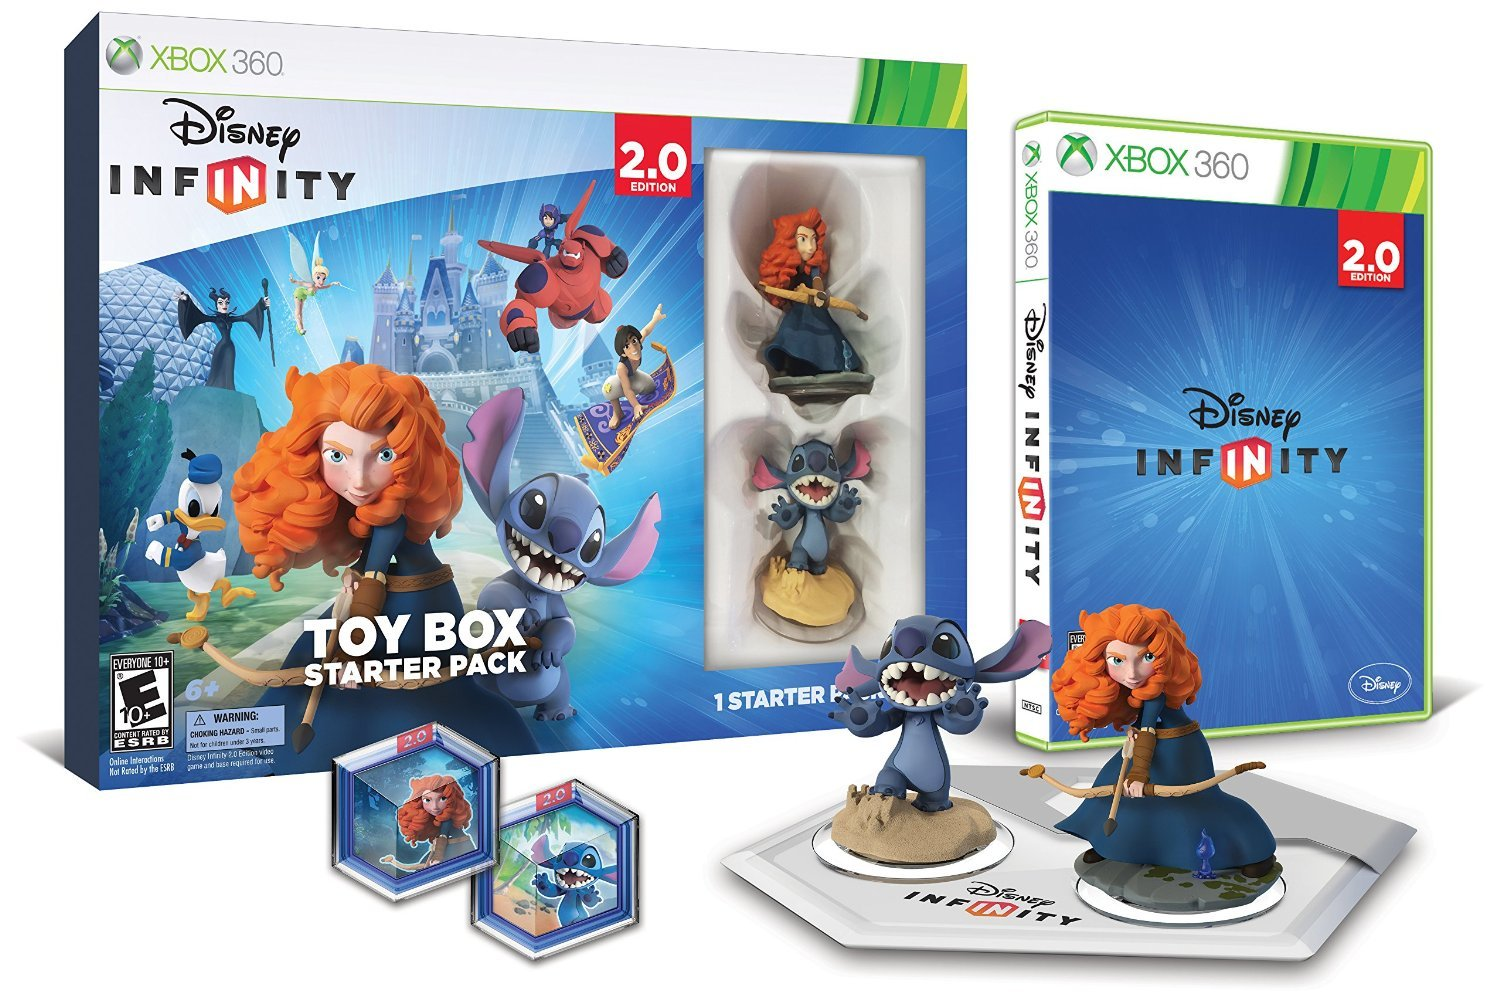 infinity xbox 360. disney infinity 2.0 marvel super heroes starter pack for xbox 360 - standard edition: amazon.ca: computer and video games